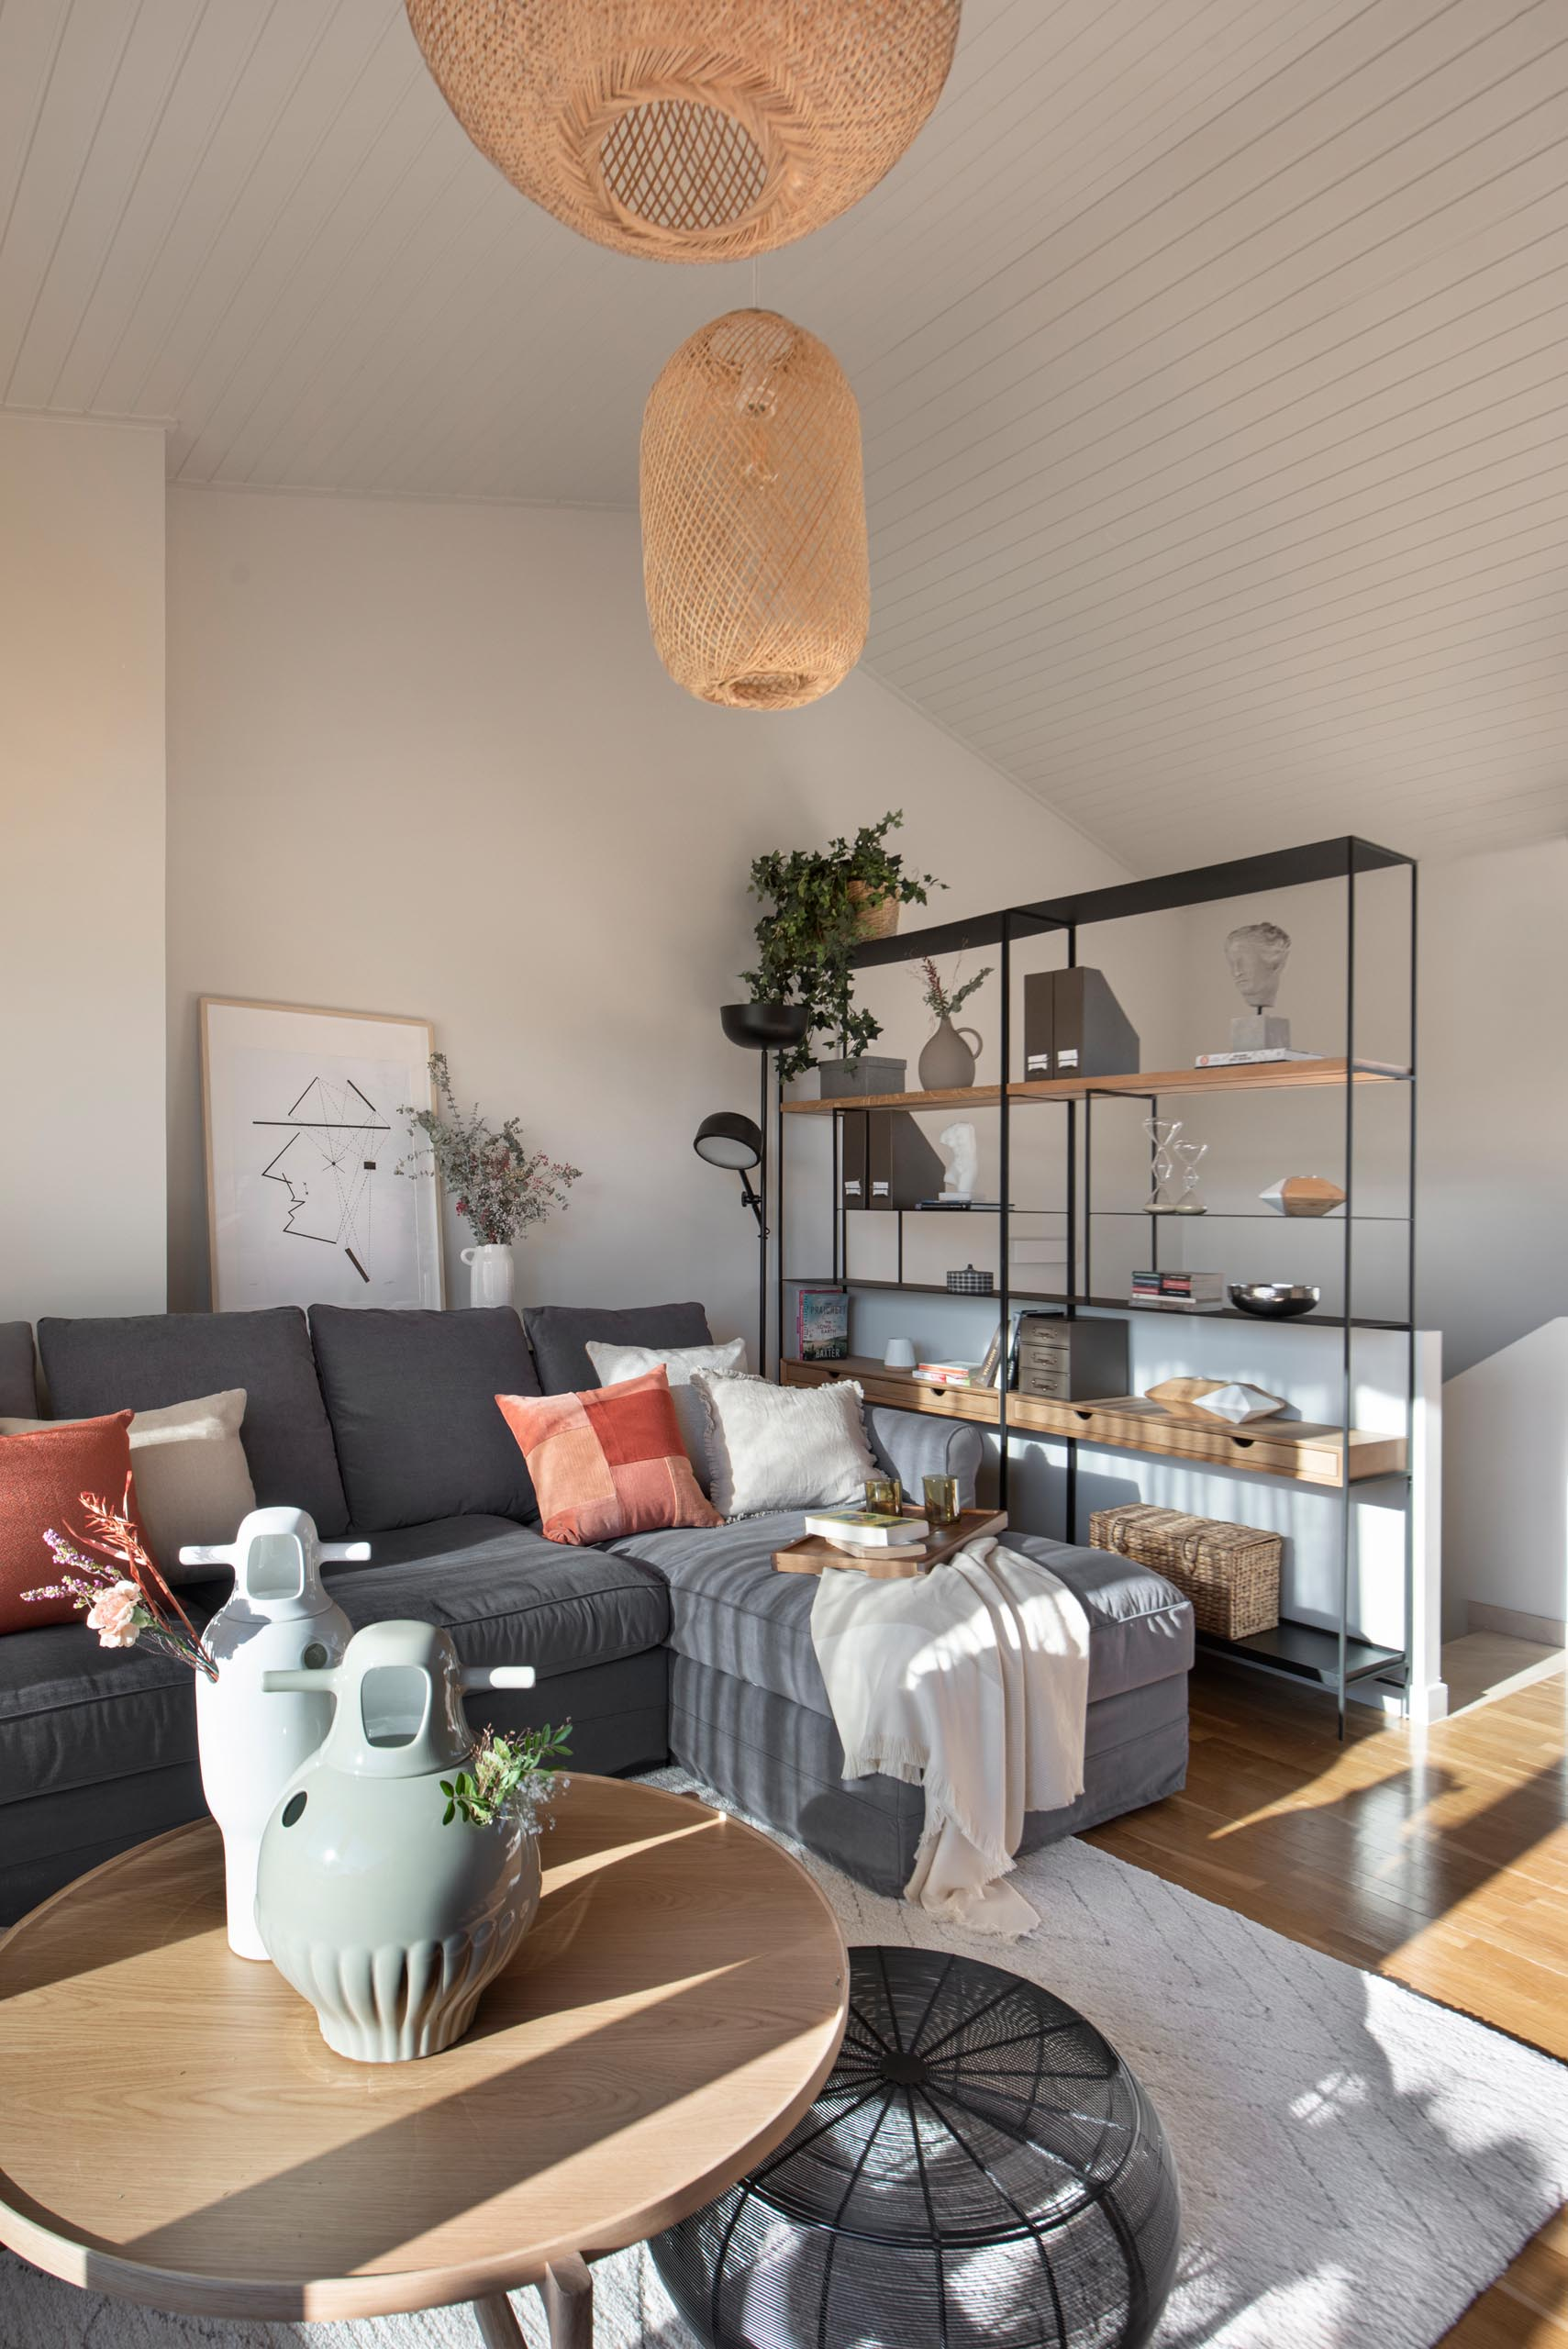 On the top level of this modern home is a secondary living room with a pitched ceiling. The living room is furnished with a couch, shelving unit, rattan pendant lights, a desk with TV above it, and a reading area with built-in shelves.